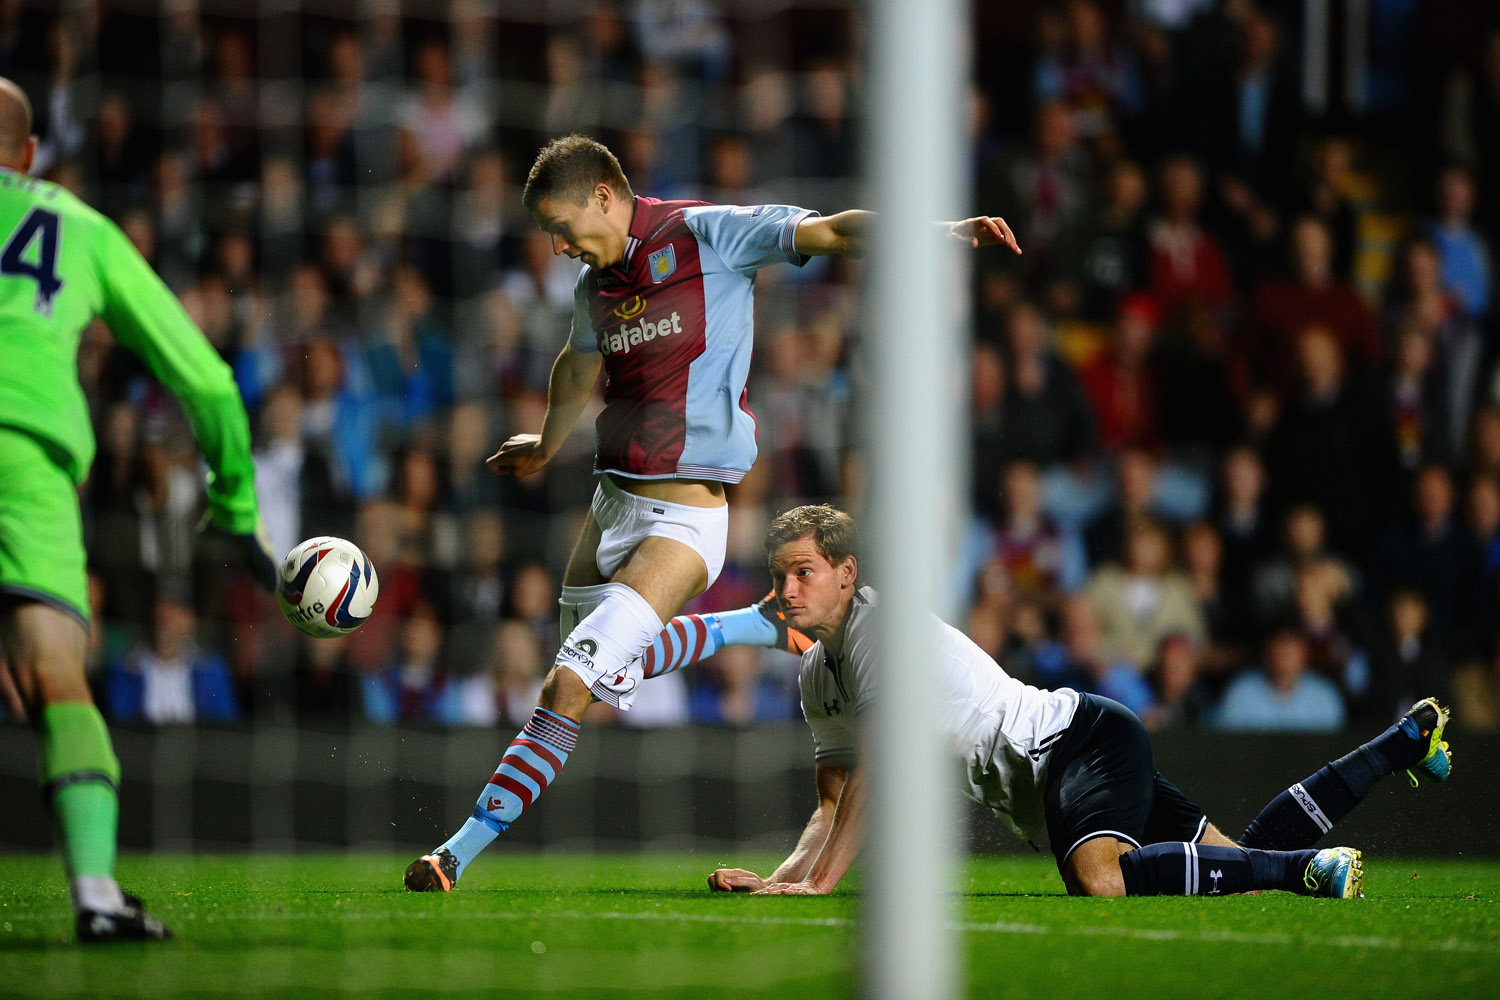 Sept. 24, 2013. Jan Verttonghen of Tottenham Hotspur hangs on to the shorts of Nicklas Helenius of Aston Villa during the Capital One Cup third round match between Aston Villa and Tottenham Hotspur at Villa Park in Birmingham, England.